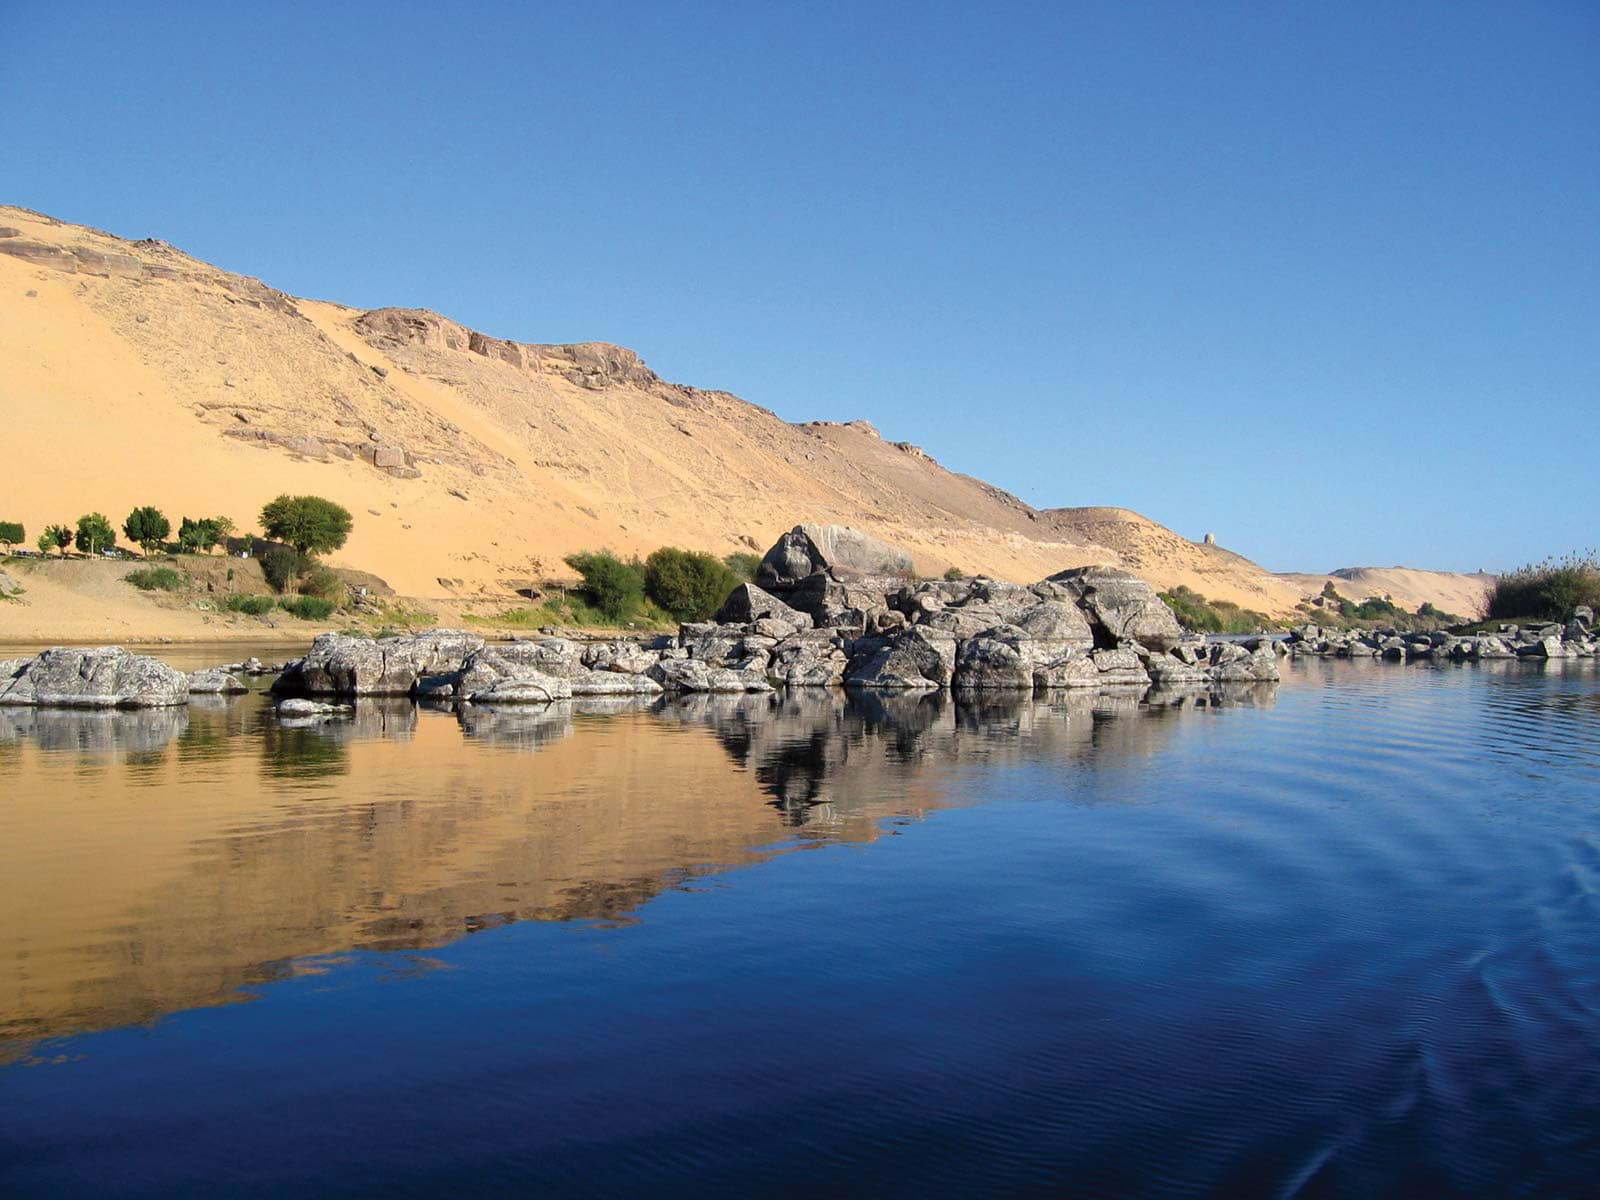 The Nile river could be 30 million years old